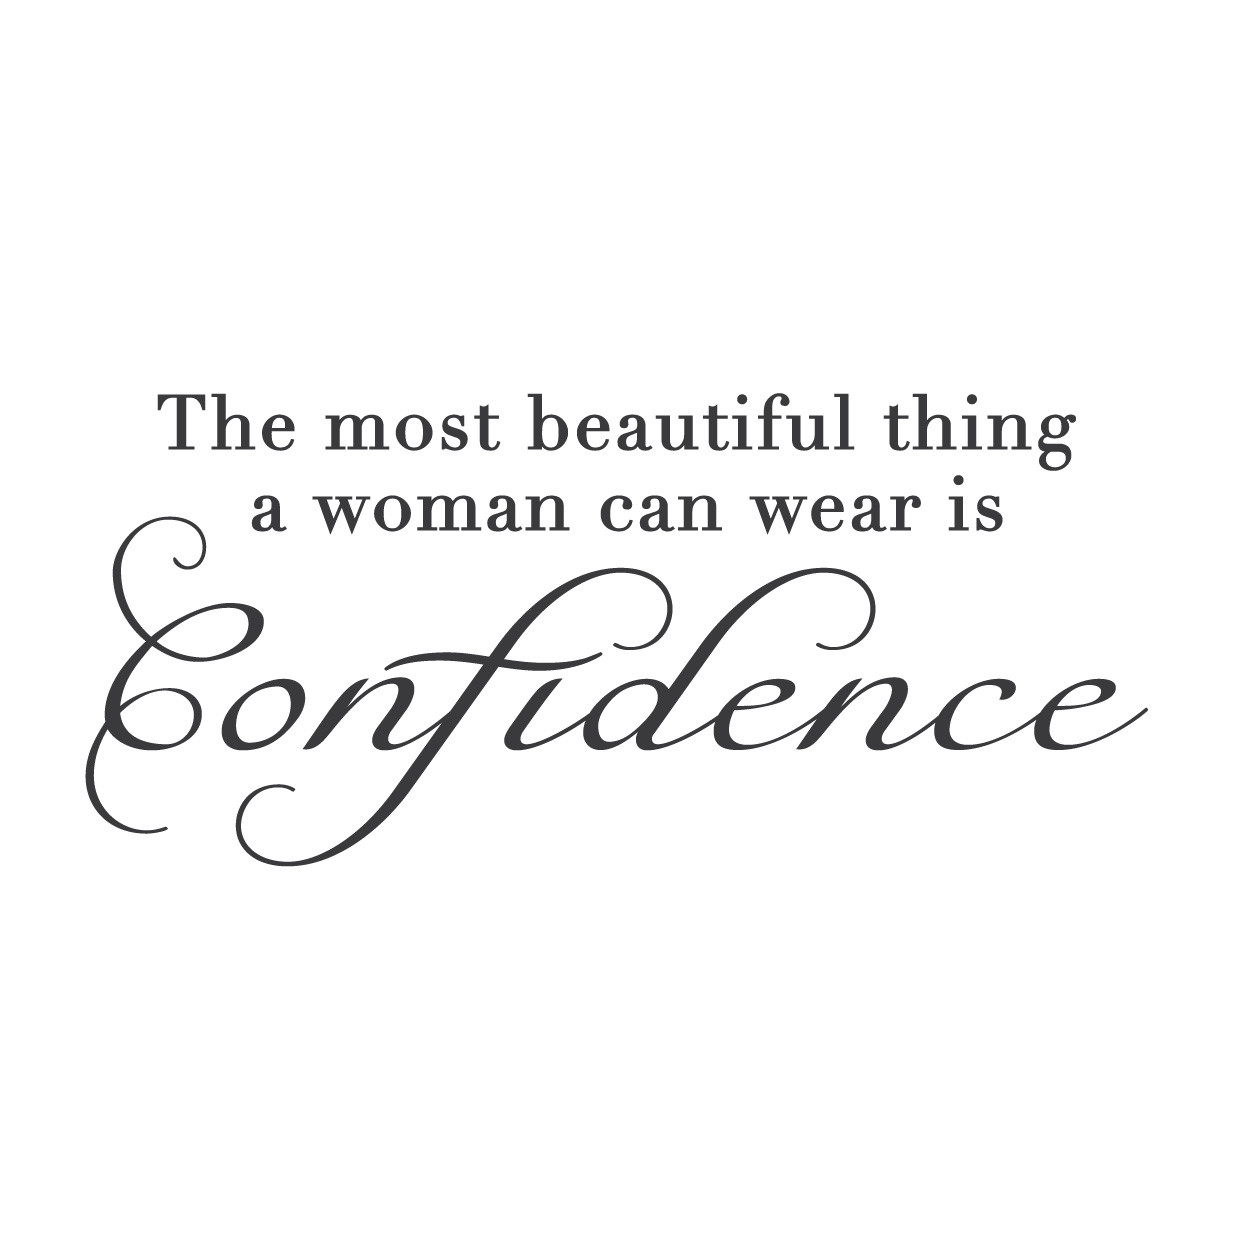 The most beautiful thing a woman can wear is confidence.